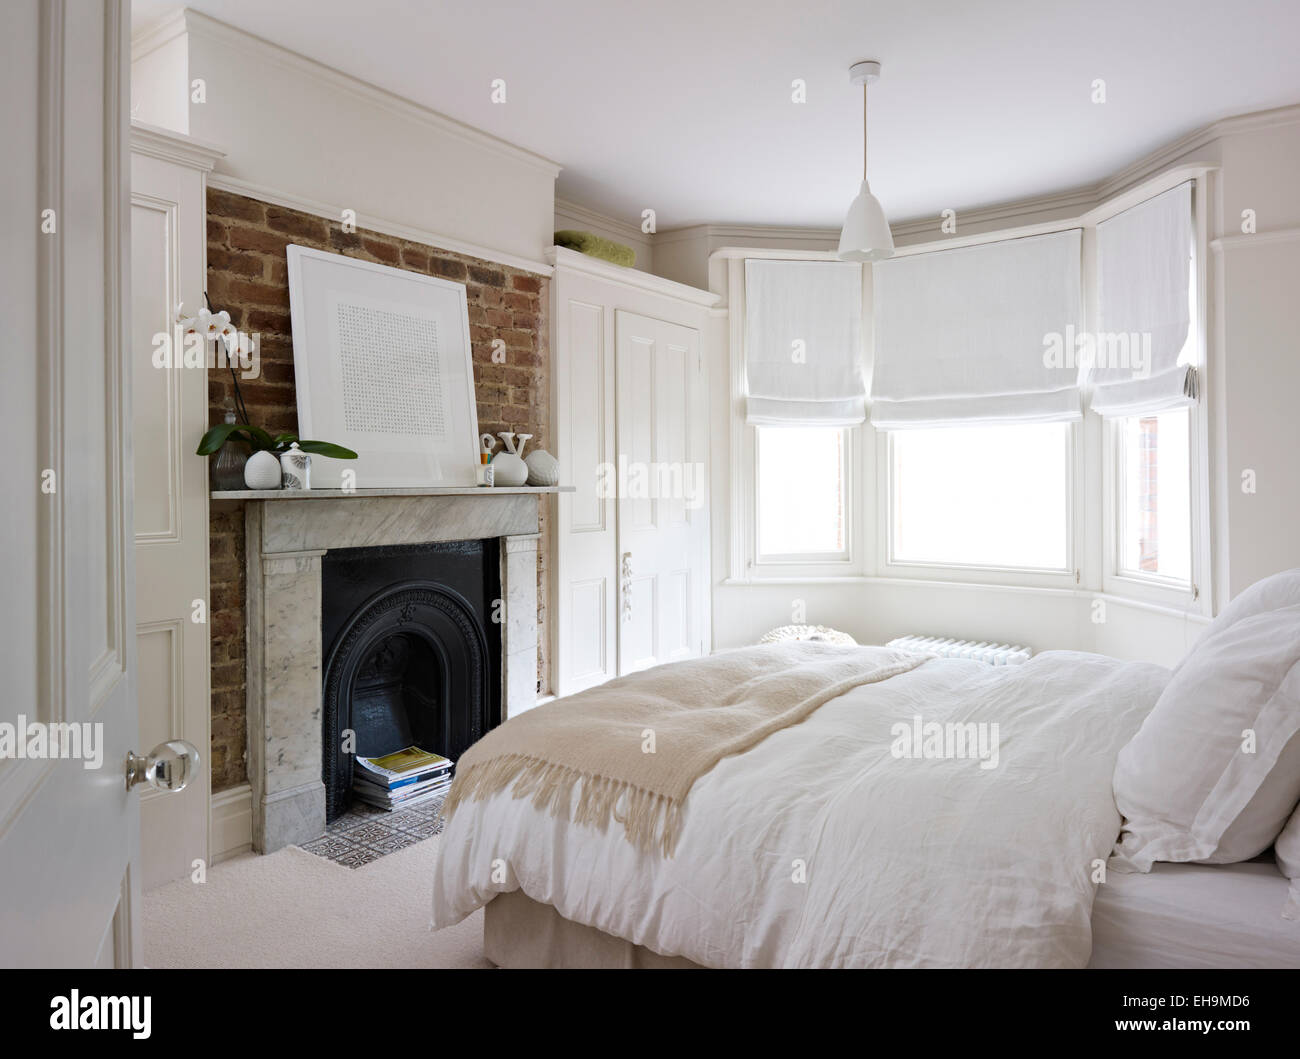 Bedroom With Bed Fireplace And Bay Window With Roman